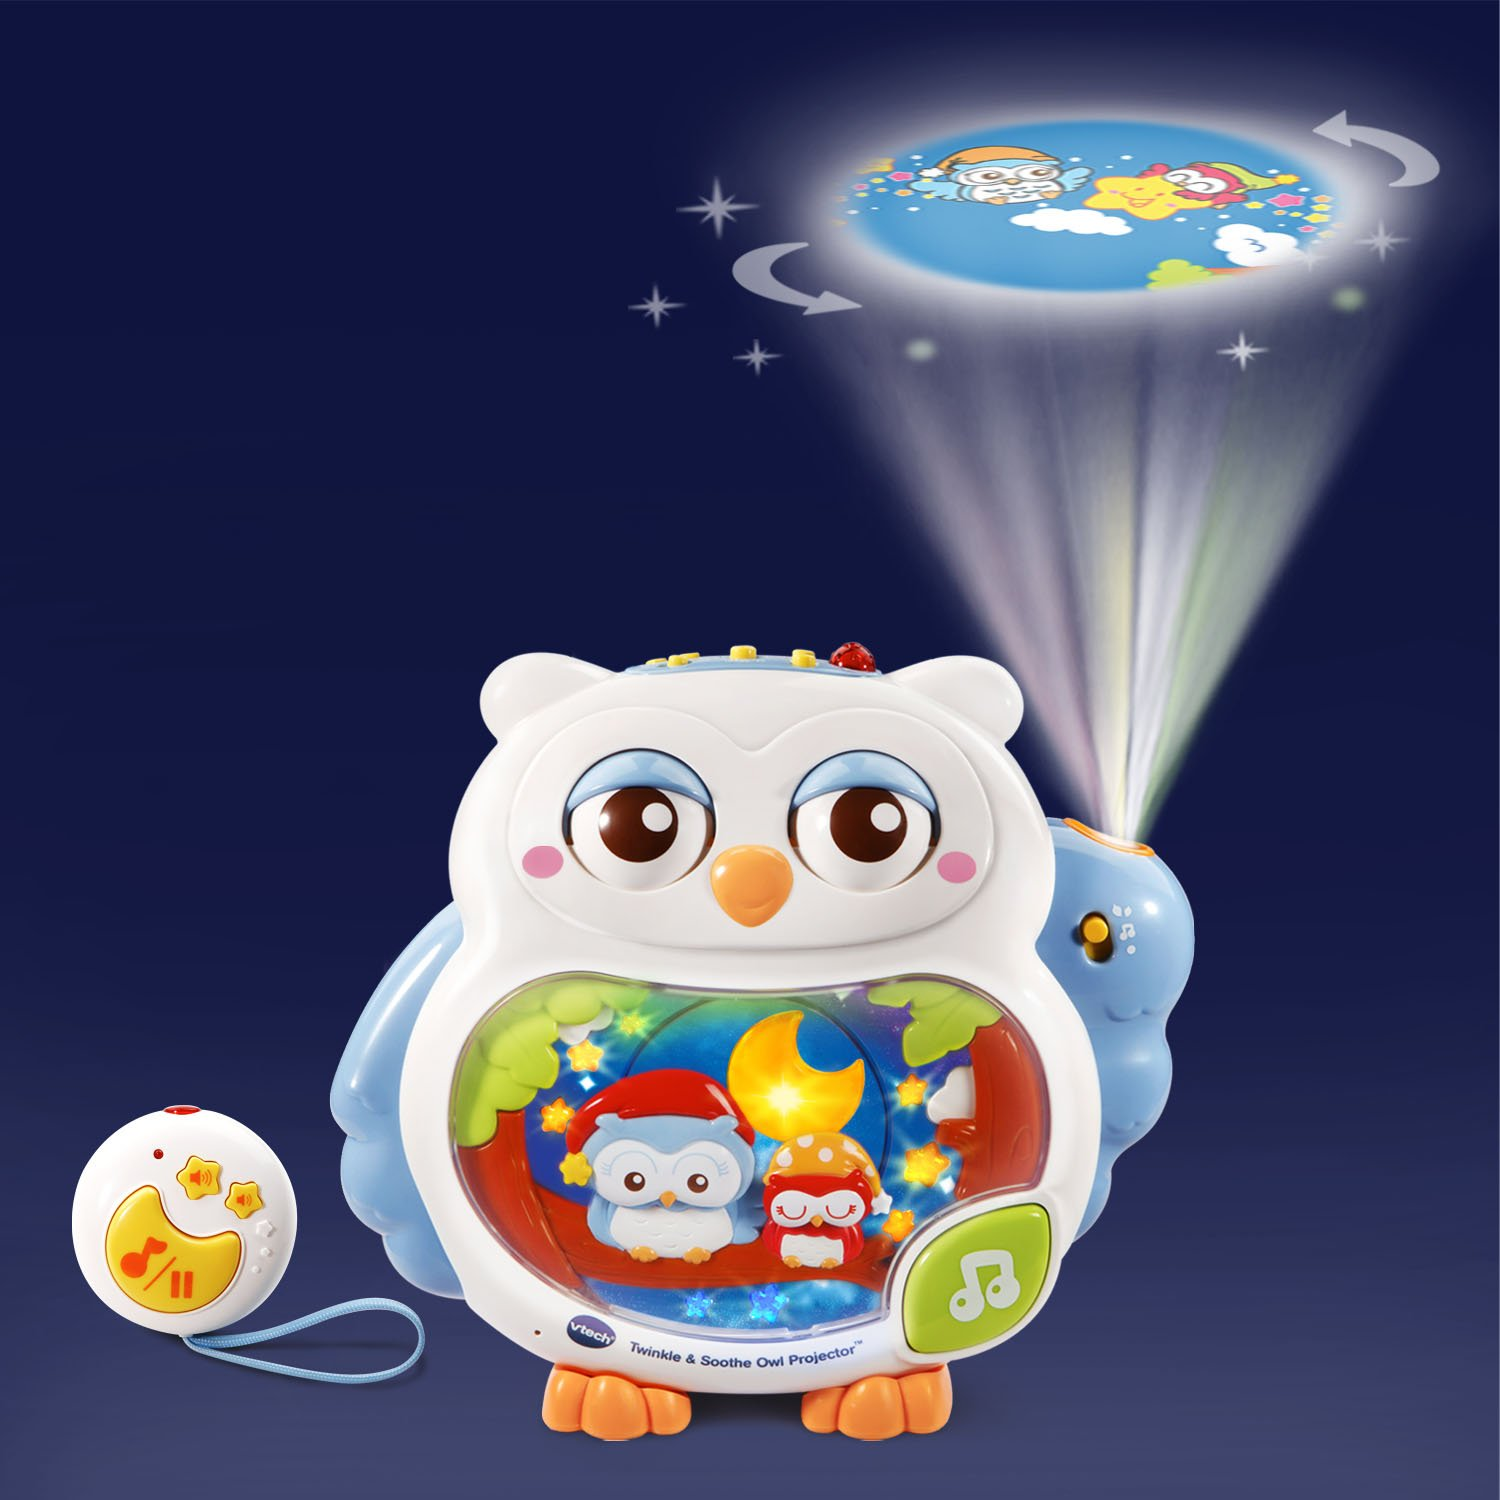 VTech Twinkle & Soothe Owl Projector by VTech (Image #2)